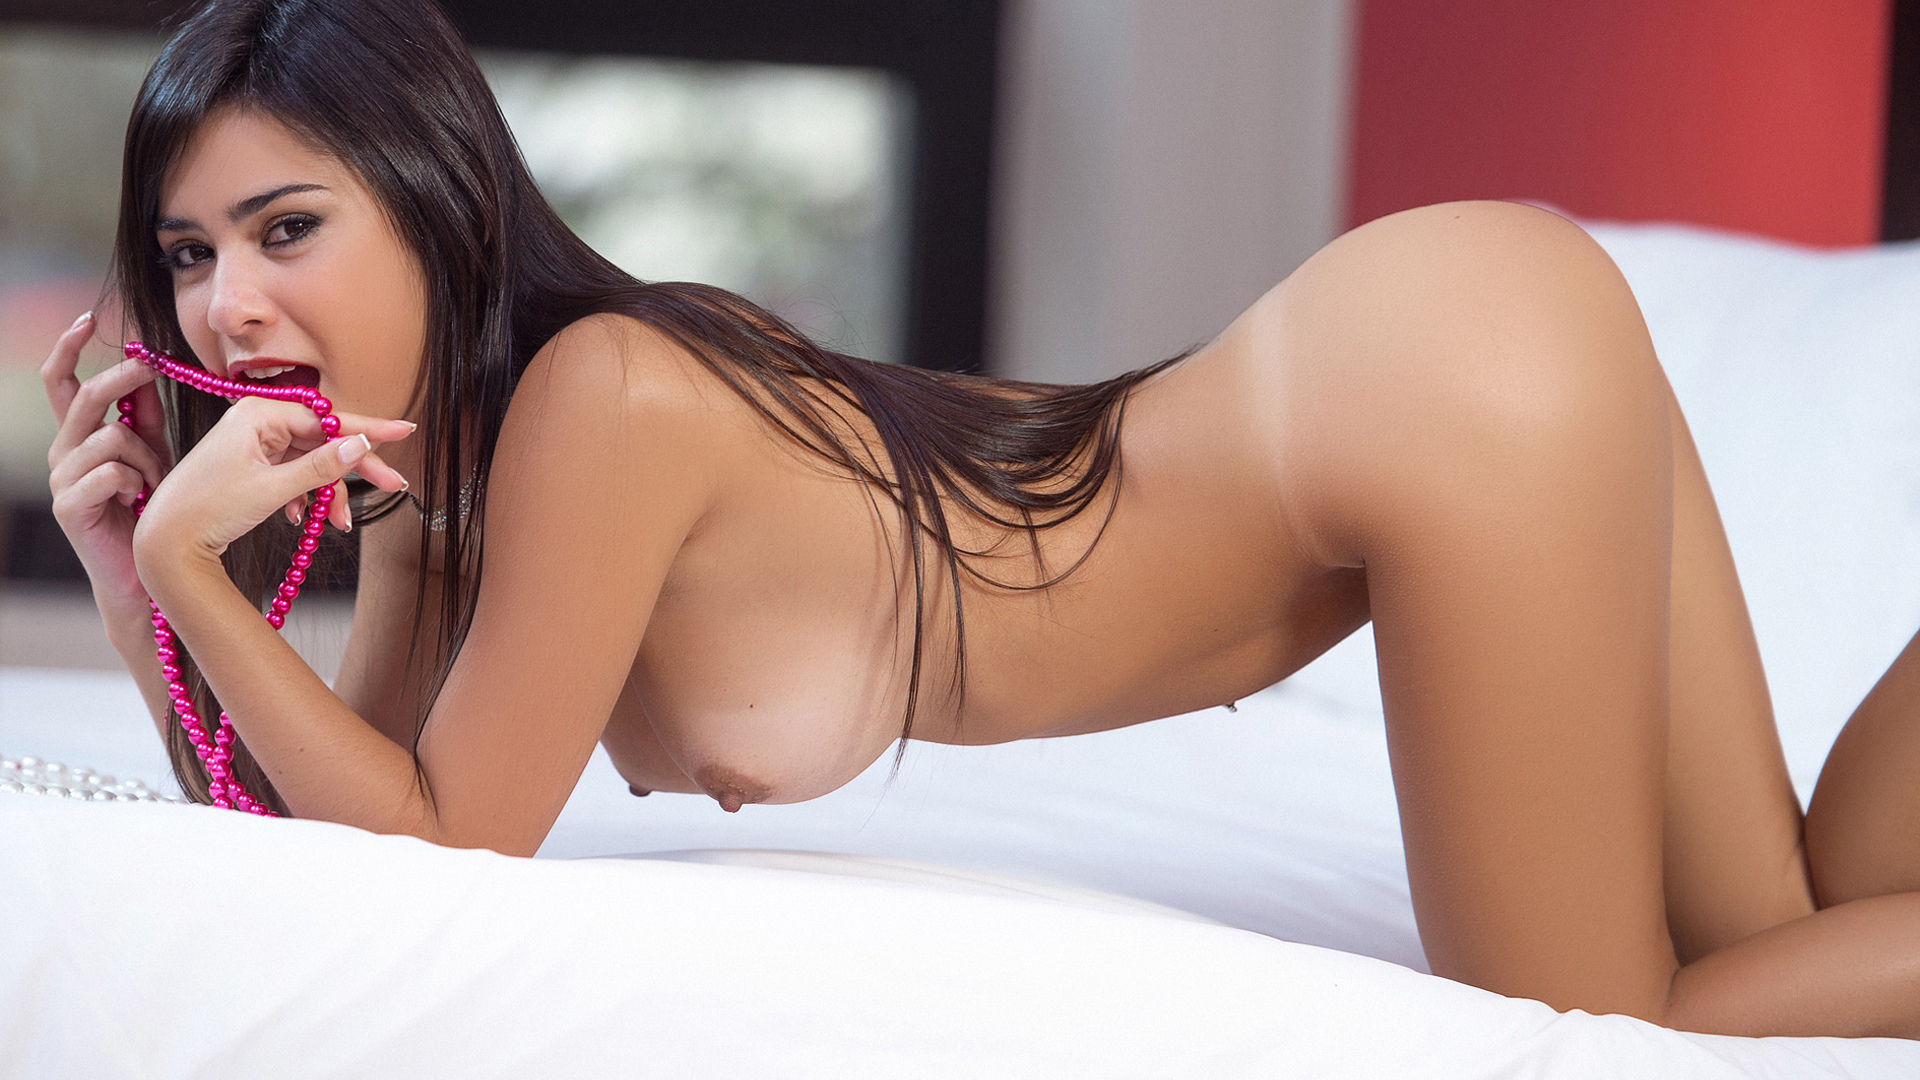 babes-sexstationtv-naked